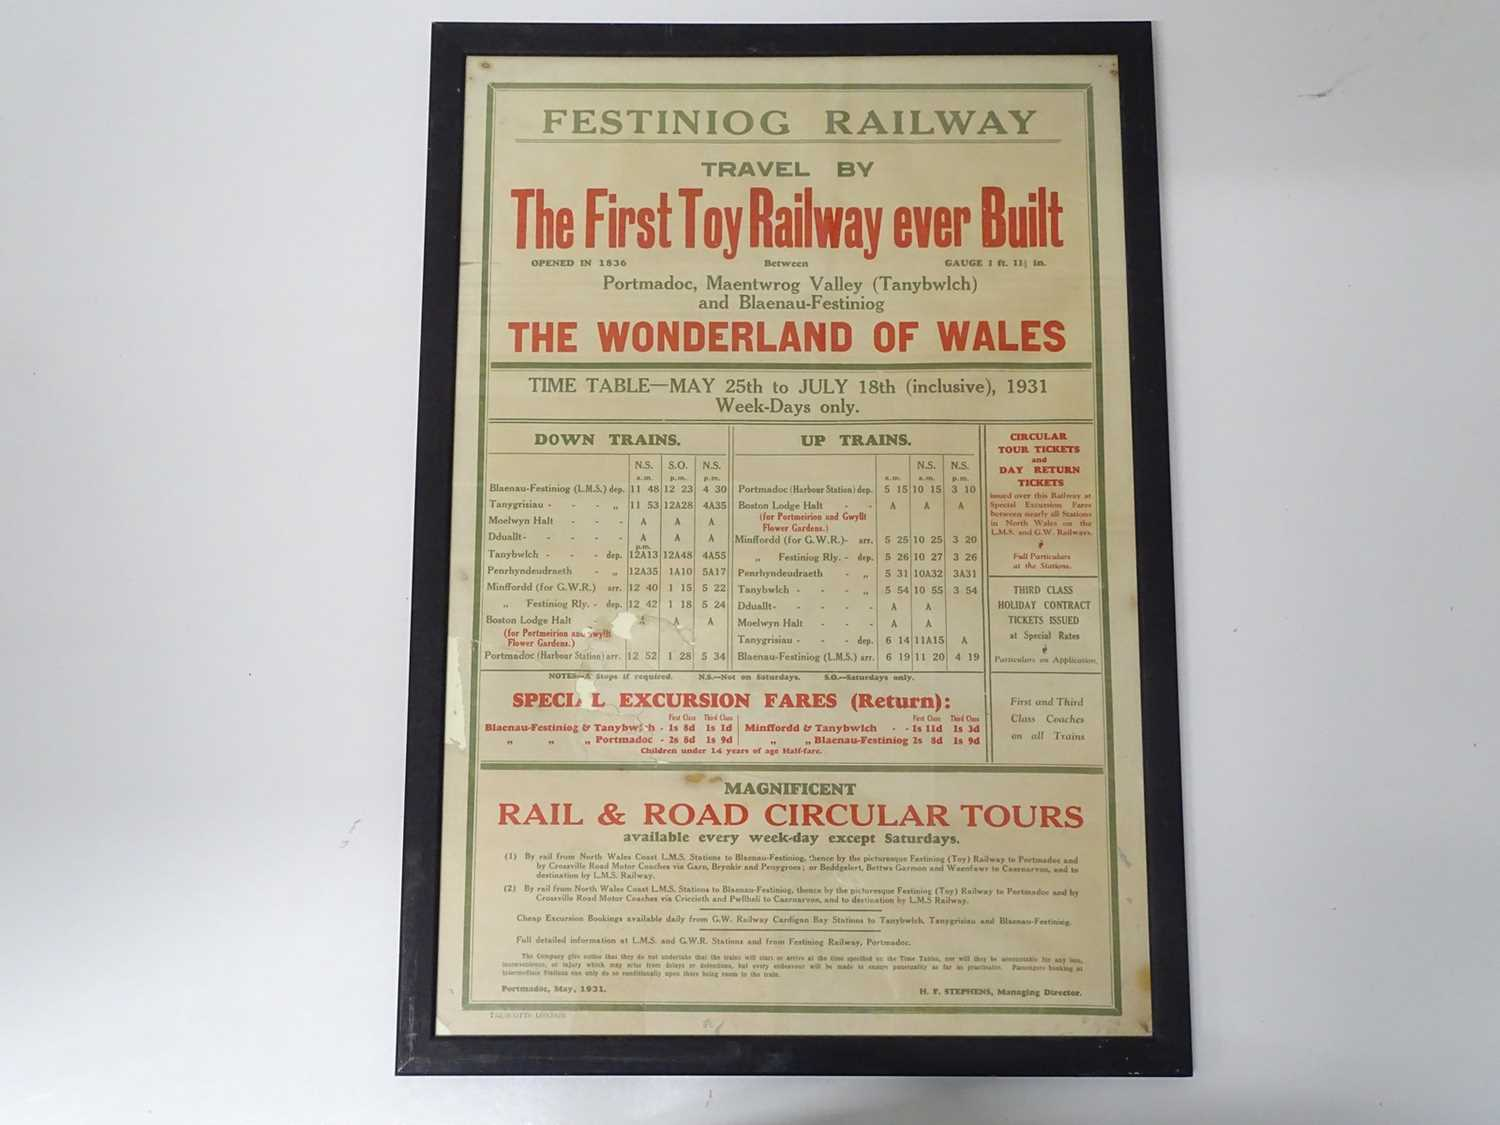 """A framed and glazed Festiniog Railway timetable (17"""" x 25"""" in a 19"""" x 26.5"""" frame) from May - July"""